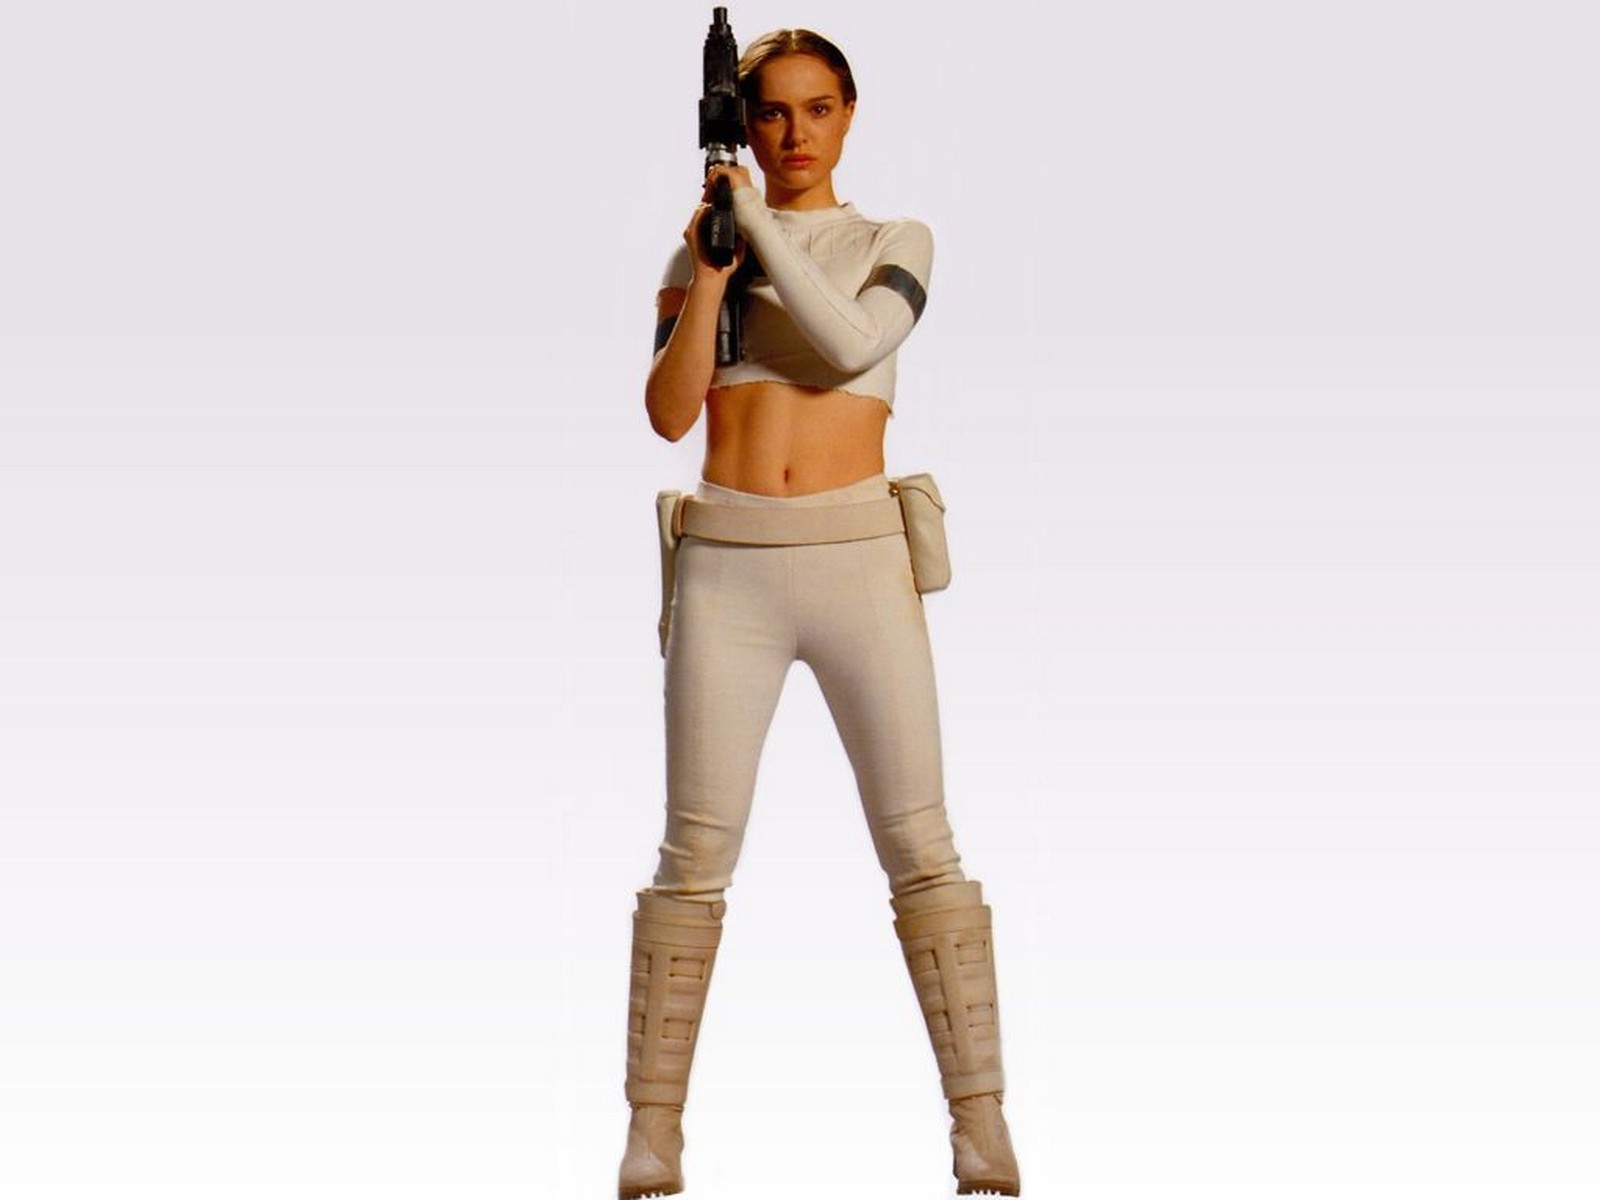 Padme from star wars naked pics from  erotic women